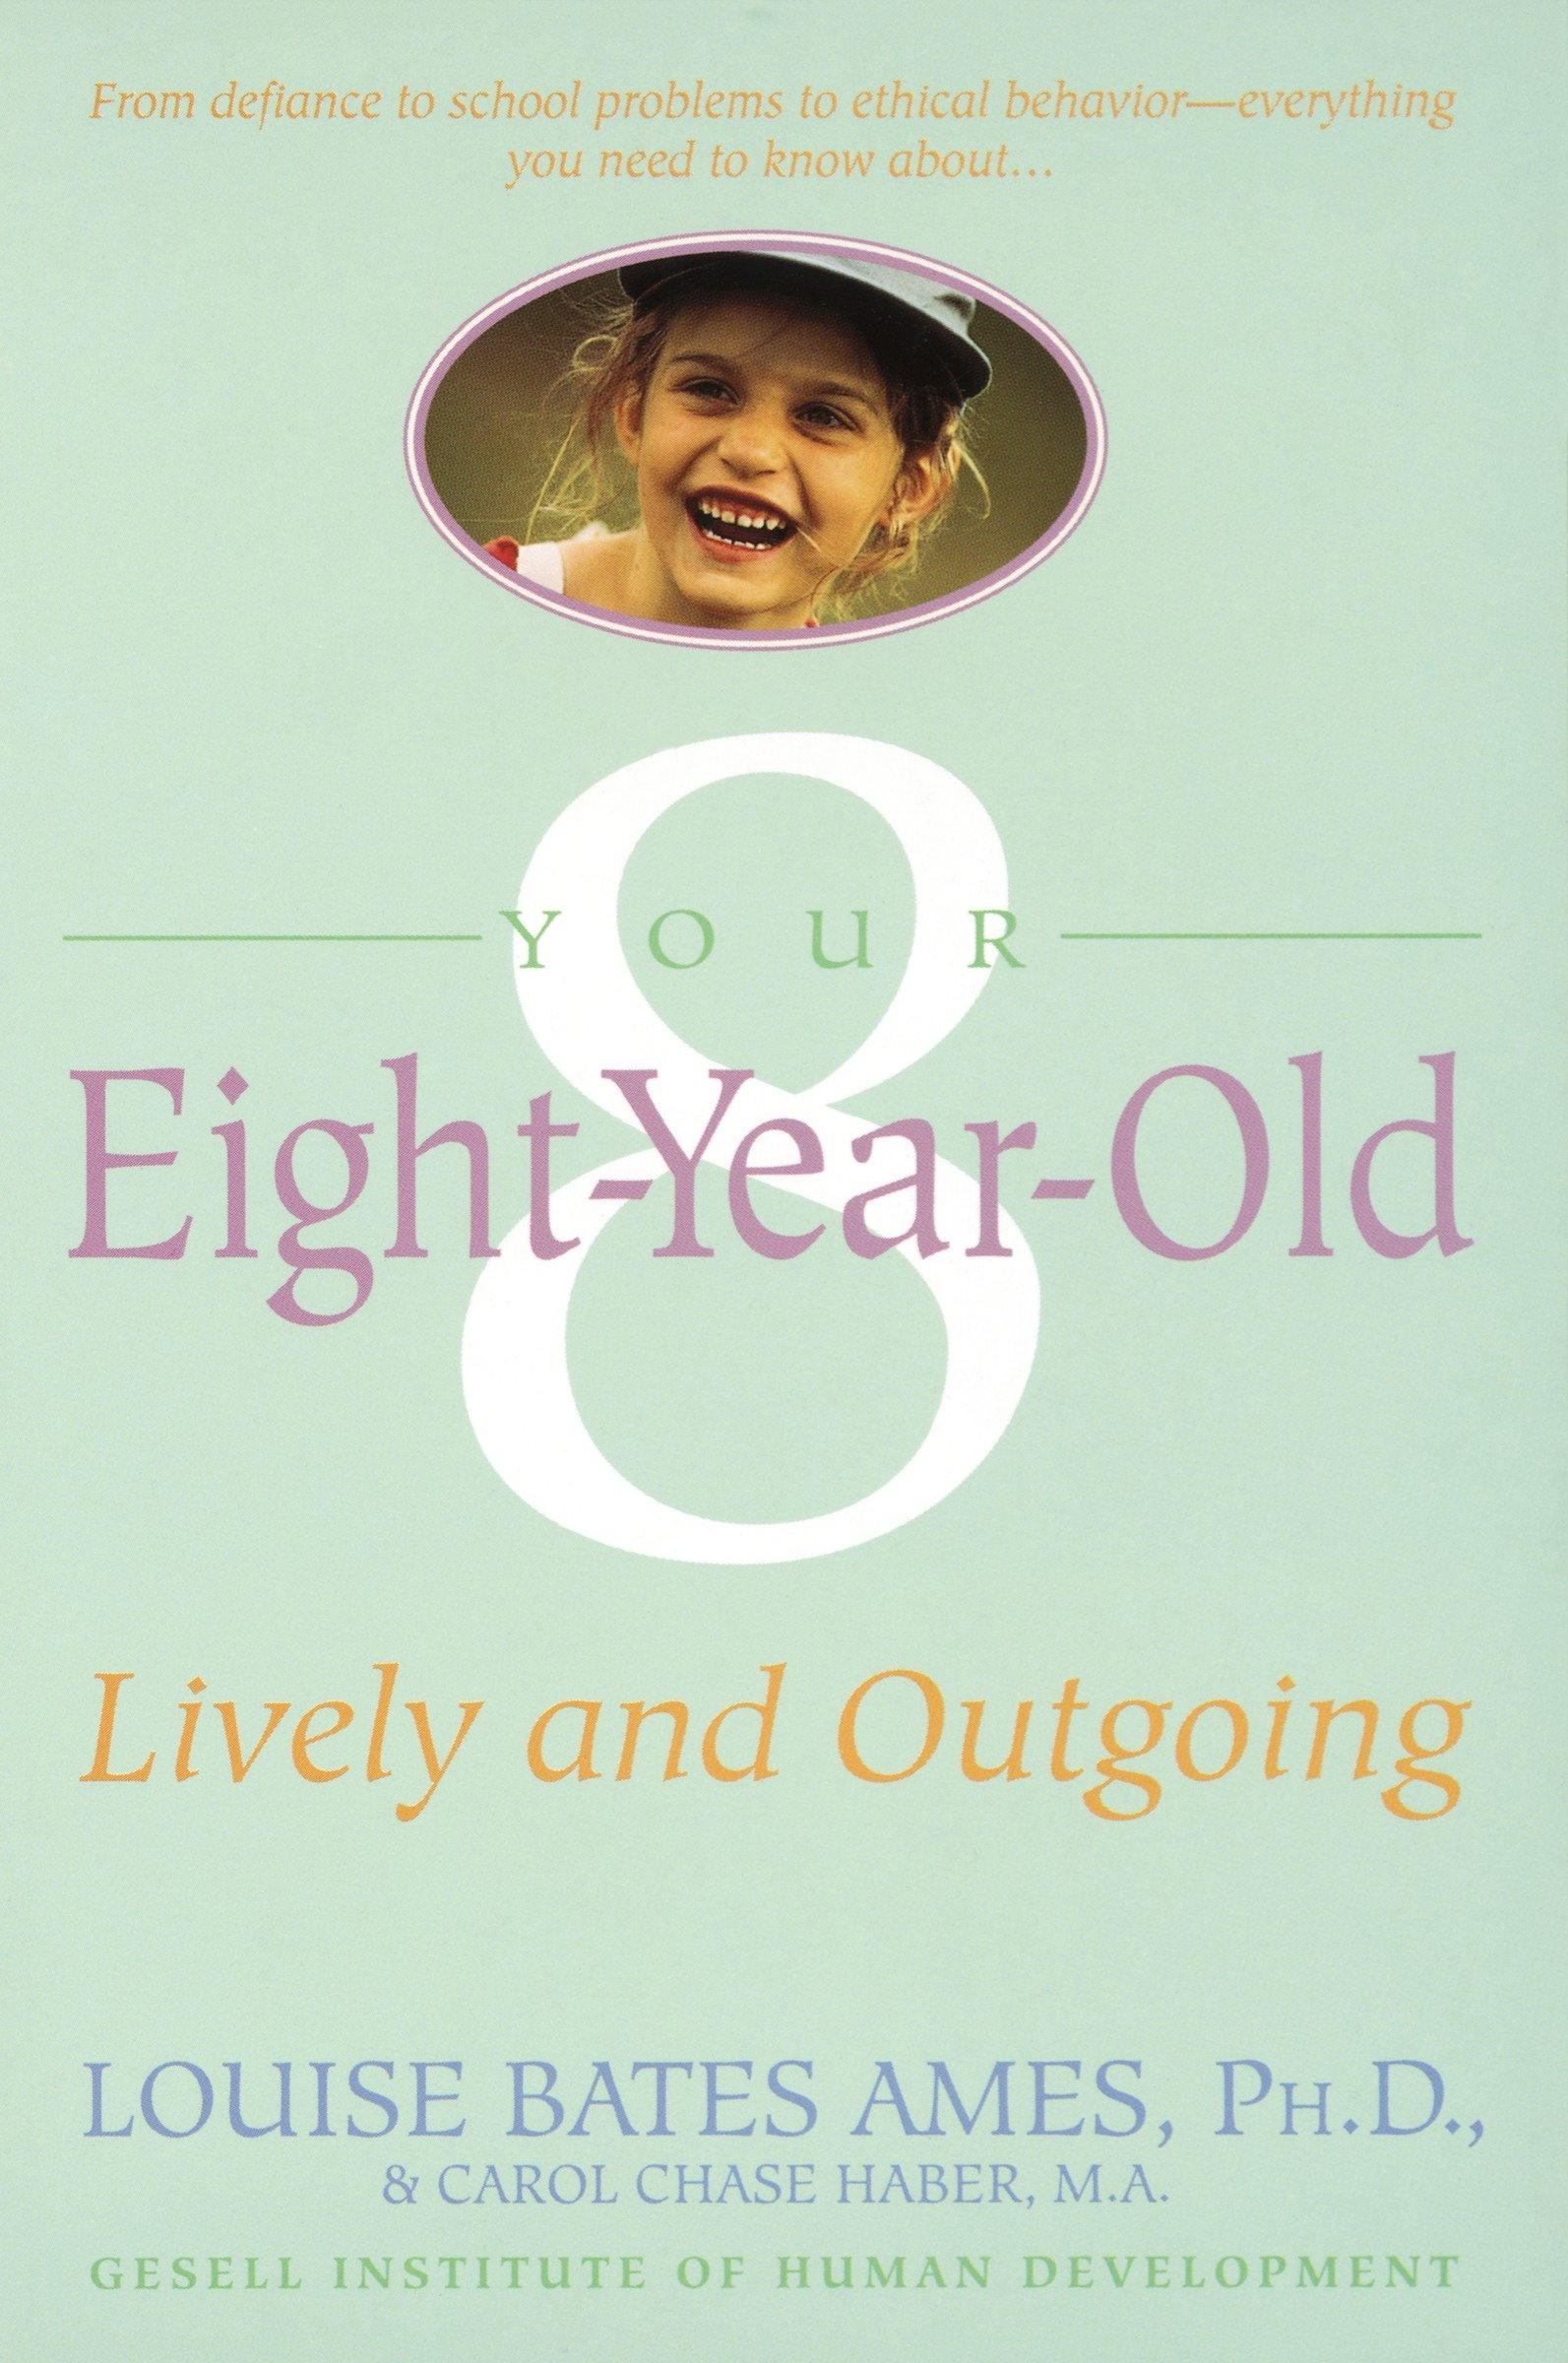 Your eight year old lively and outgoing cover image